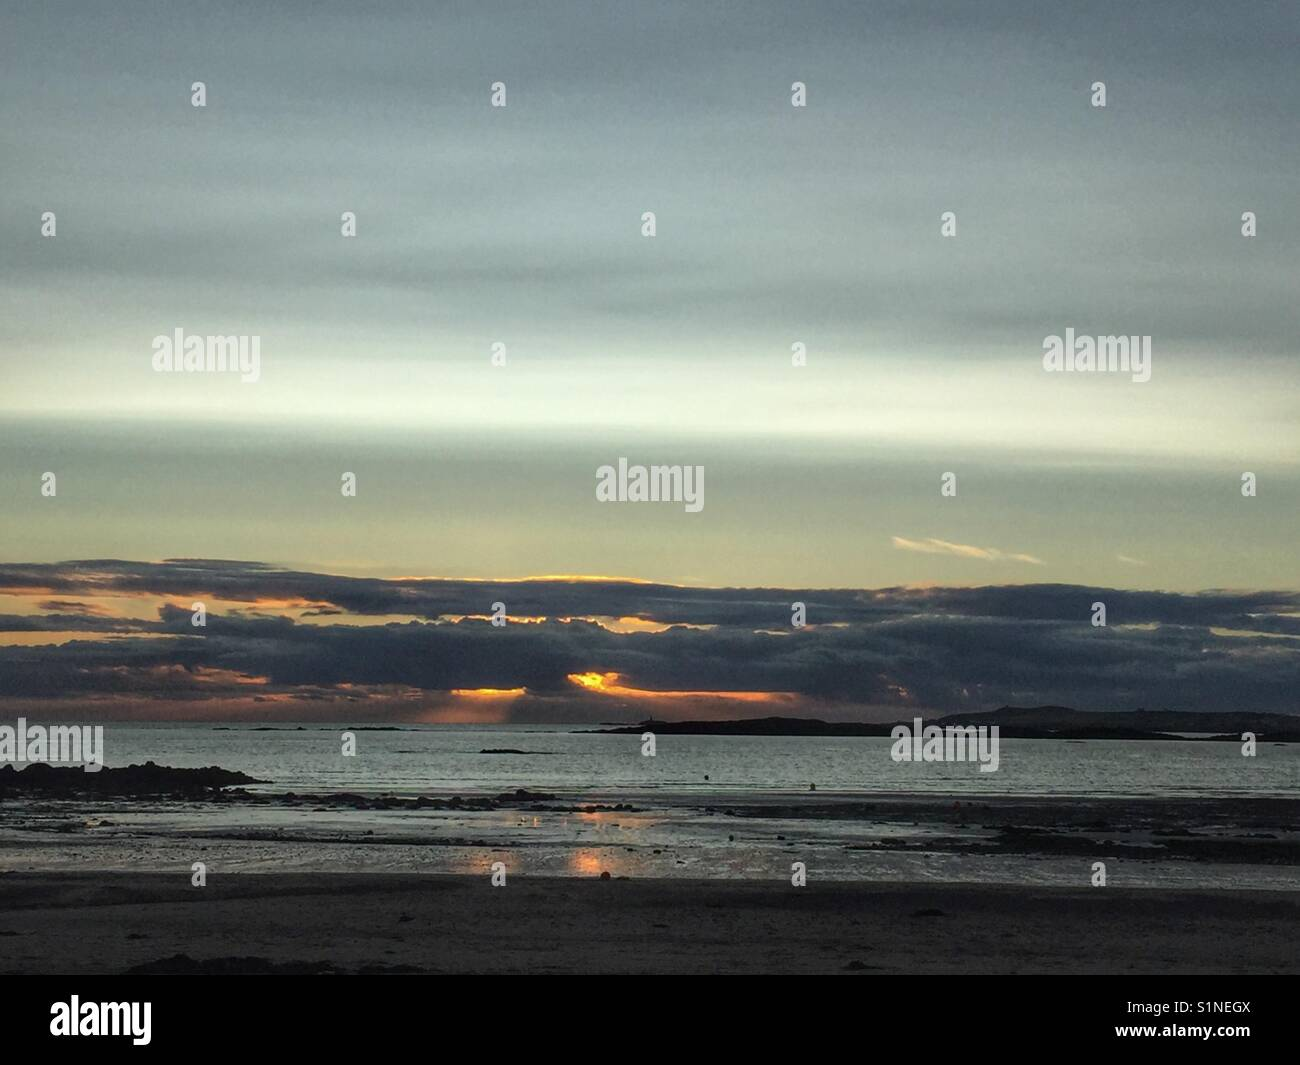 Rhosneigr sunset, mid September, Anglesey, North Wales - Stock Image